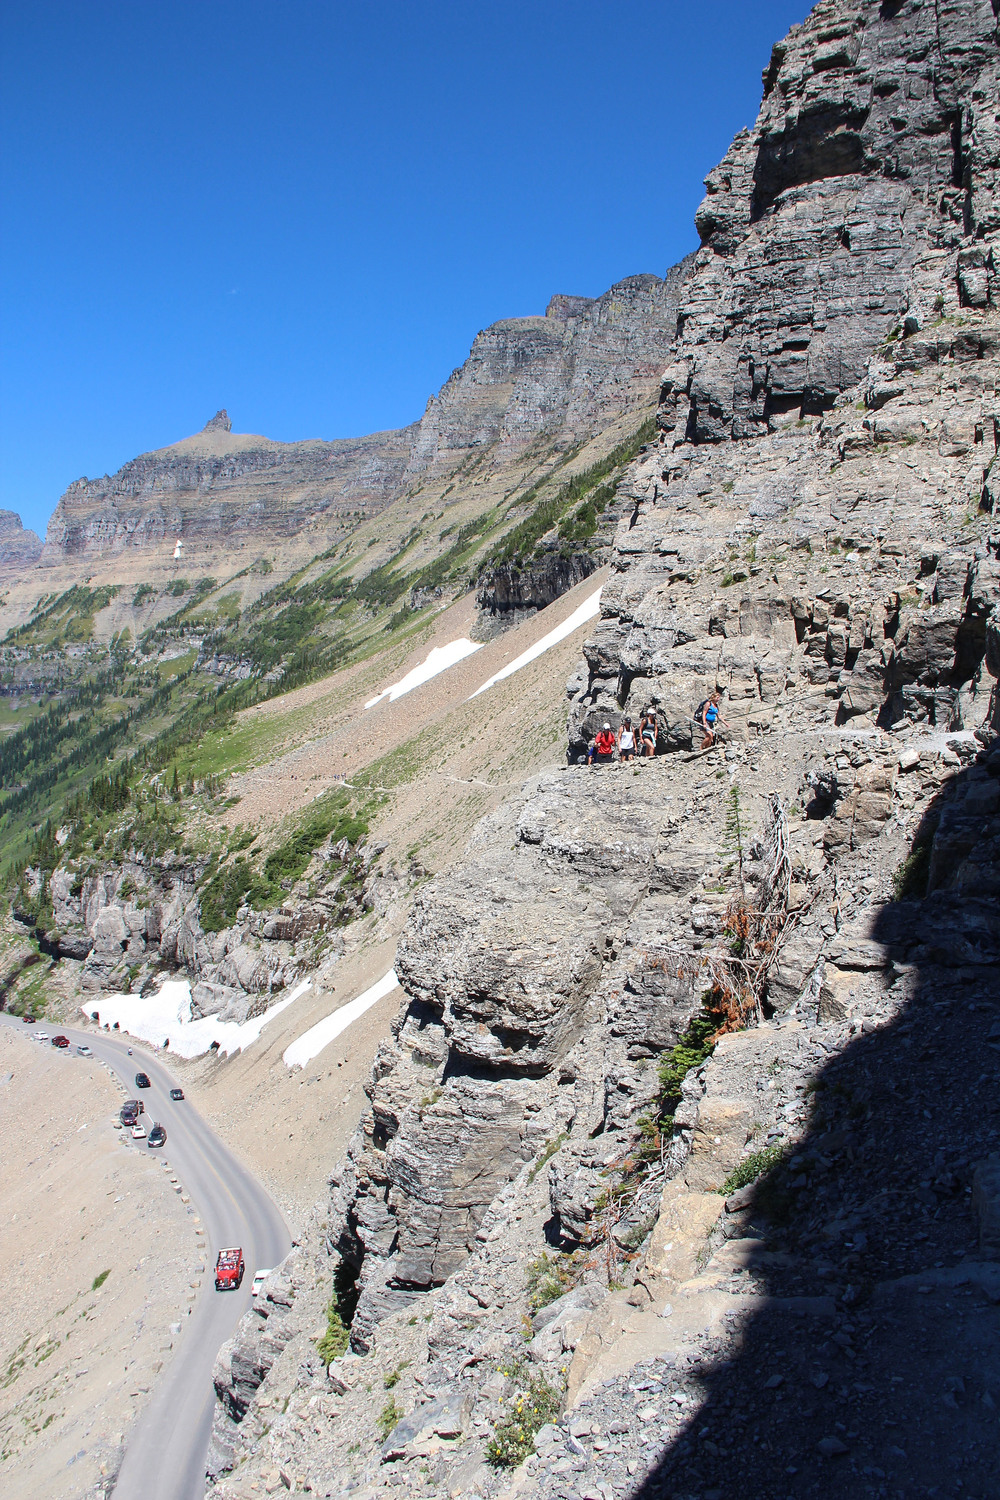 The Highline trail near its trailhead, with the Going to the Sun Road below.